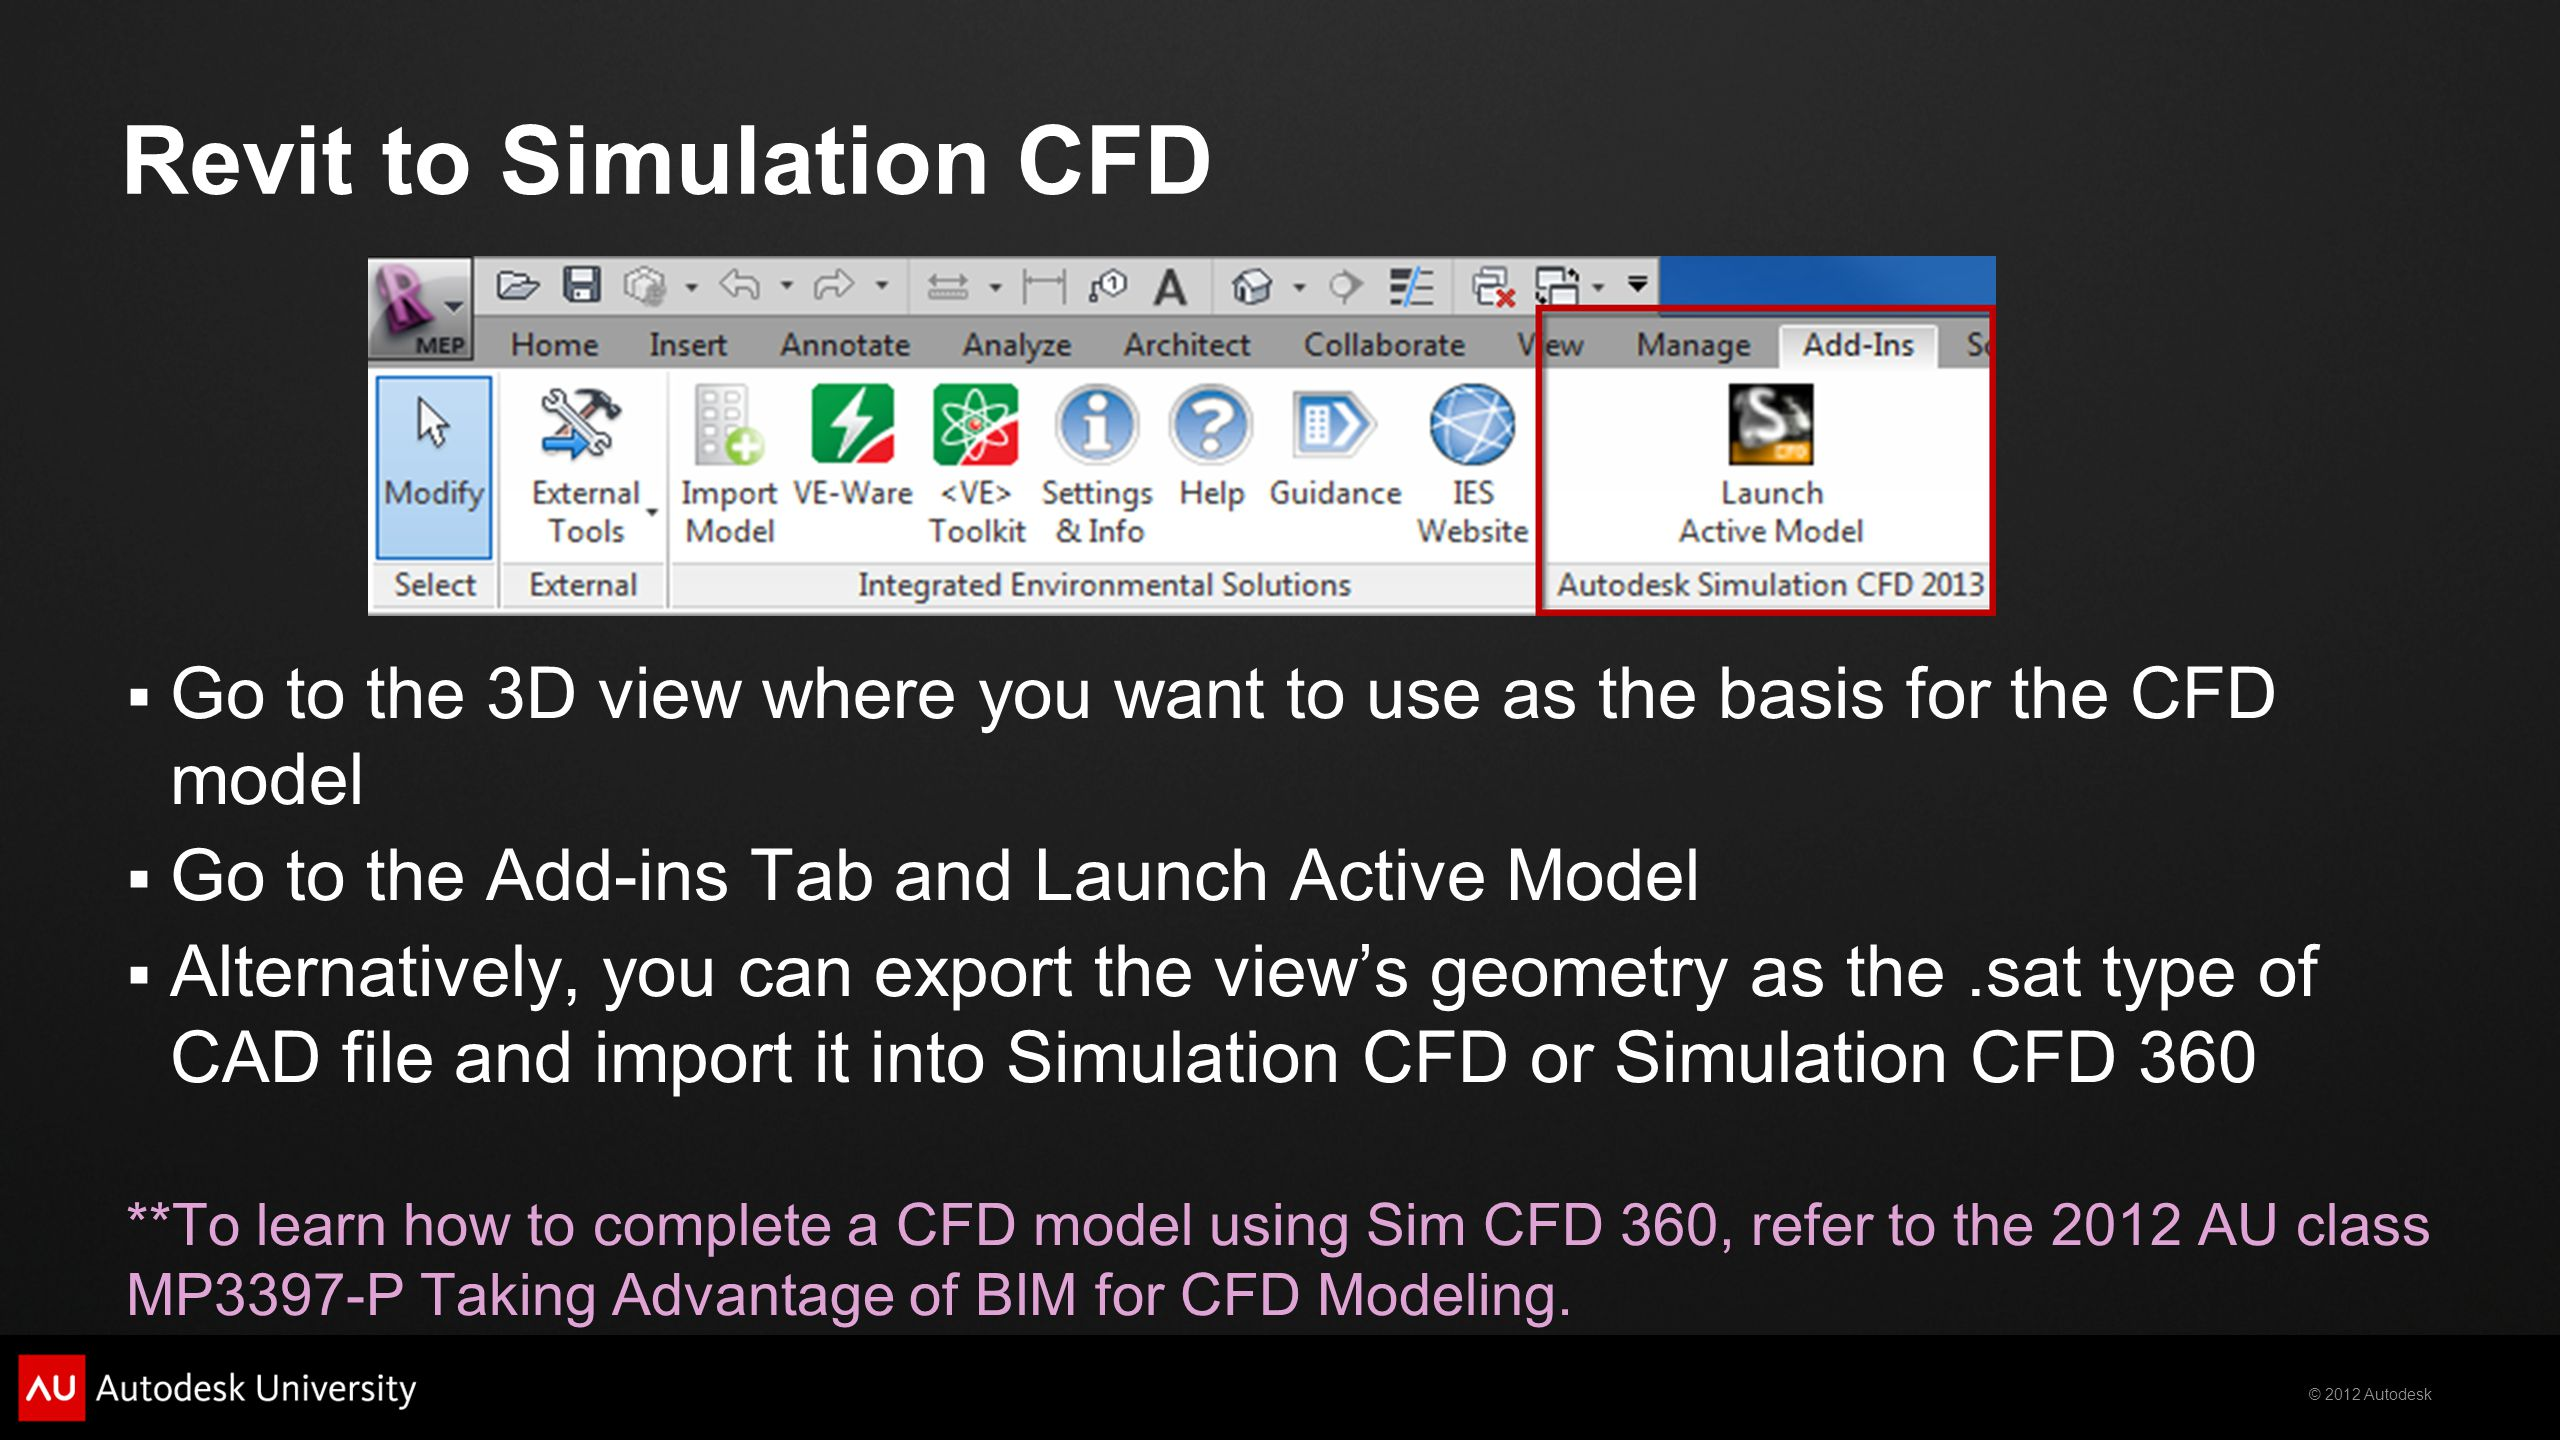 © 2012 Autodesk Revit to Simulation CFD Go to the 3D view where you want to use as the basis for the CFD model Go to the Add-ins Tab and Launch Active Model Alternatively, you can export the views geometry as the.sat type of CAD file and import it into Simulation CFD or Simulation CFD 360 **To learn how to complete a CFD model using Sim CFD 360, refer to the 2012 AU class MP3397-P Taking Advantage of BIM for CFD Modeling.